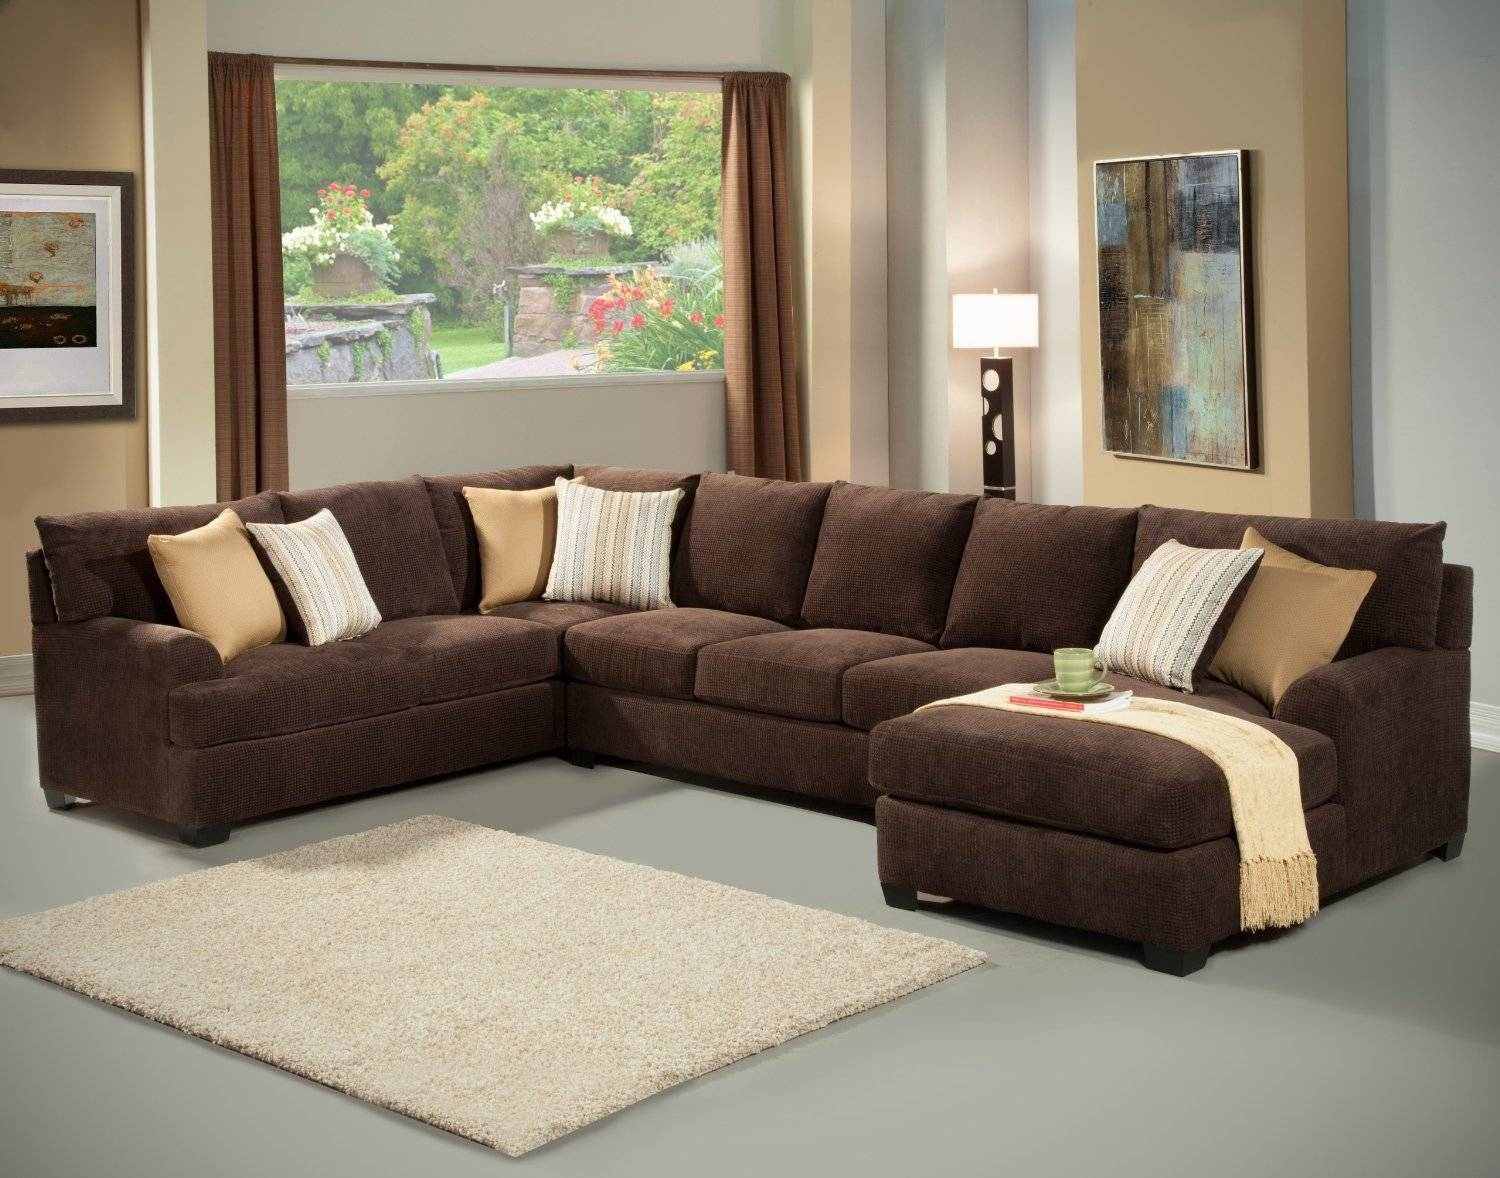 Beautiful Colored Sectional Sofas 67 For Green Sectional Sofa With intended for Green Sectional Sofa With Chaise (Image 5 of 30)